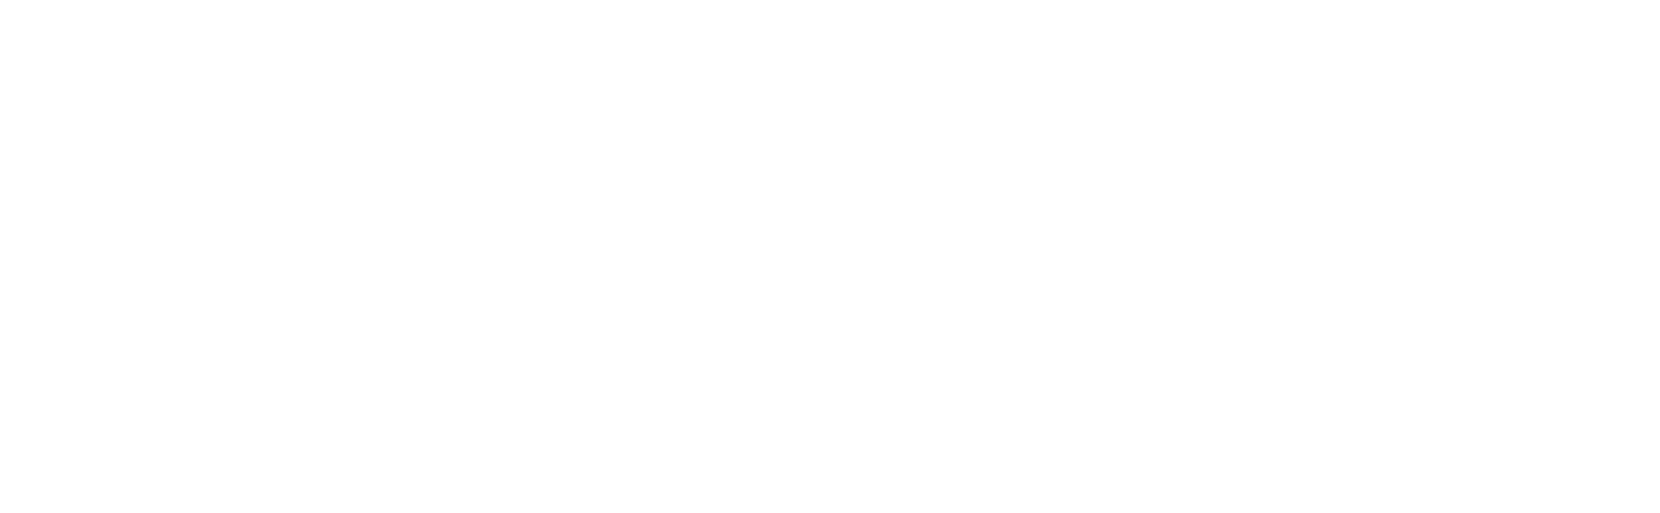 FTP Today - Secure FTP Hosting Service